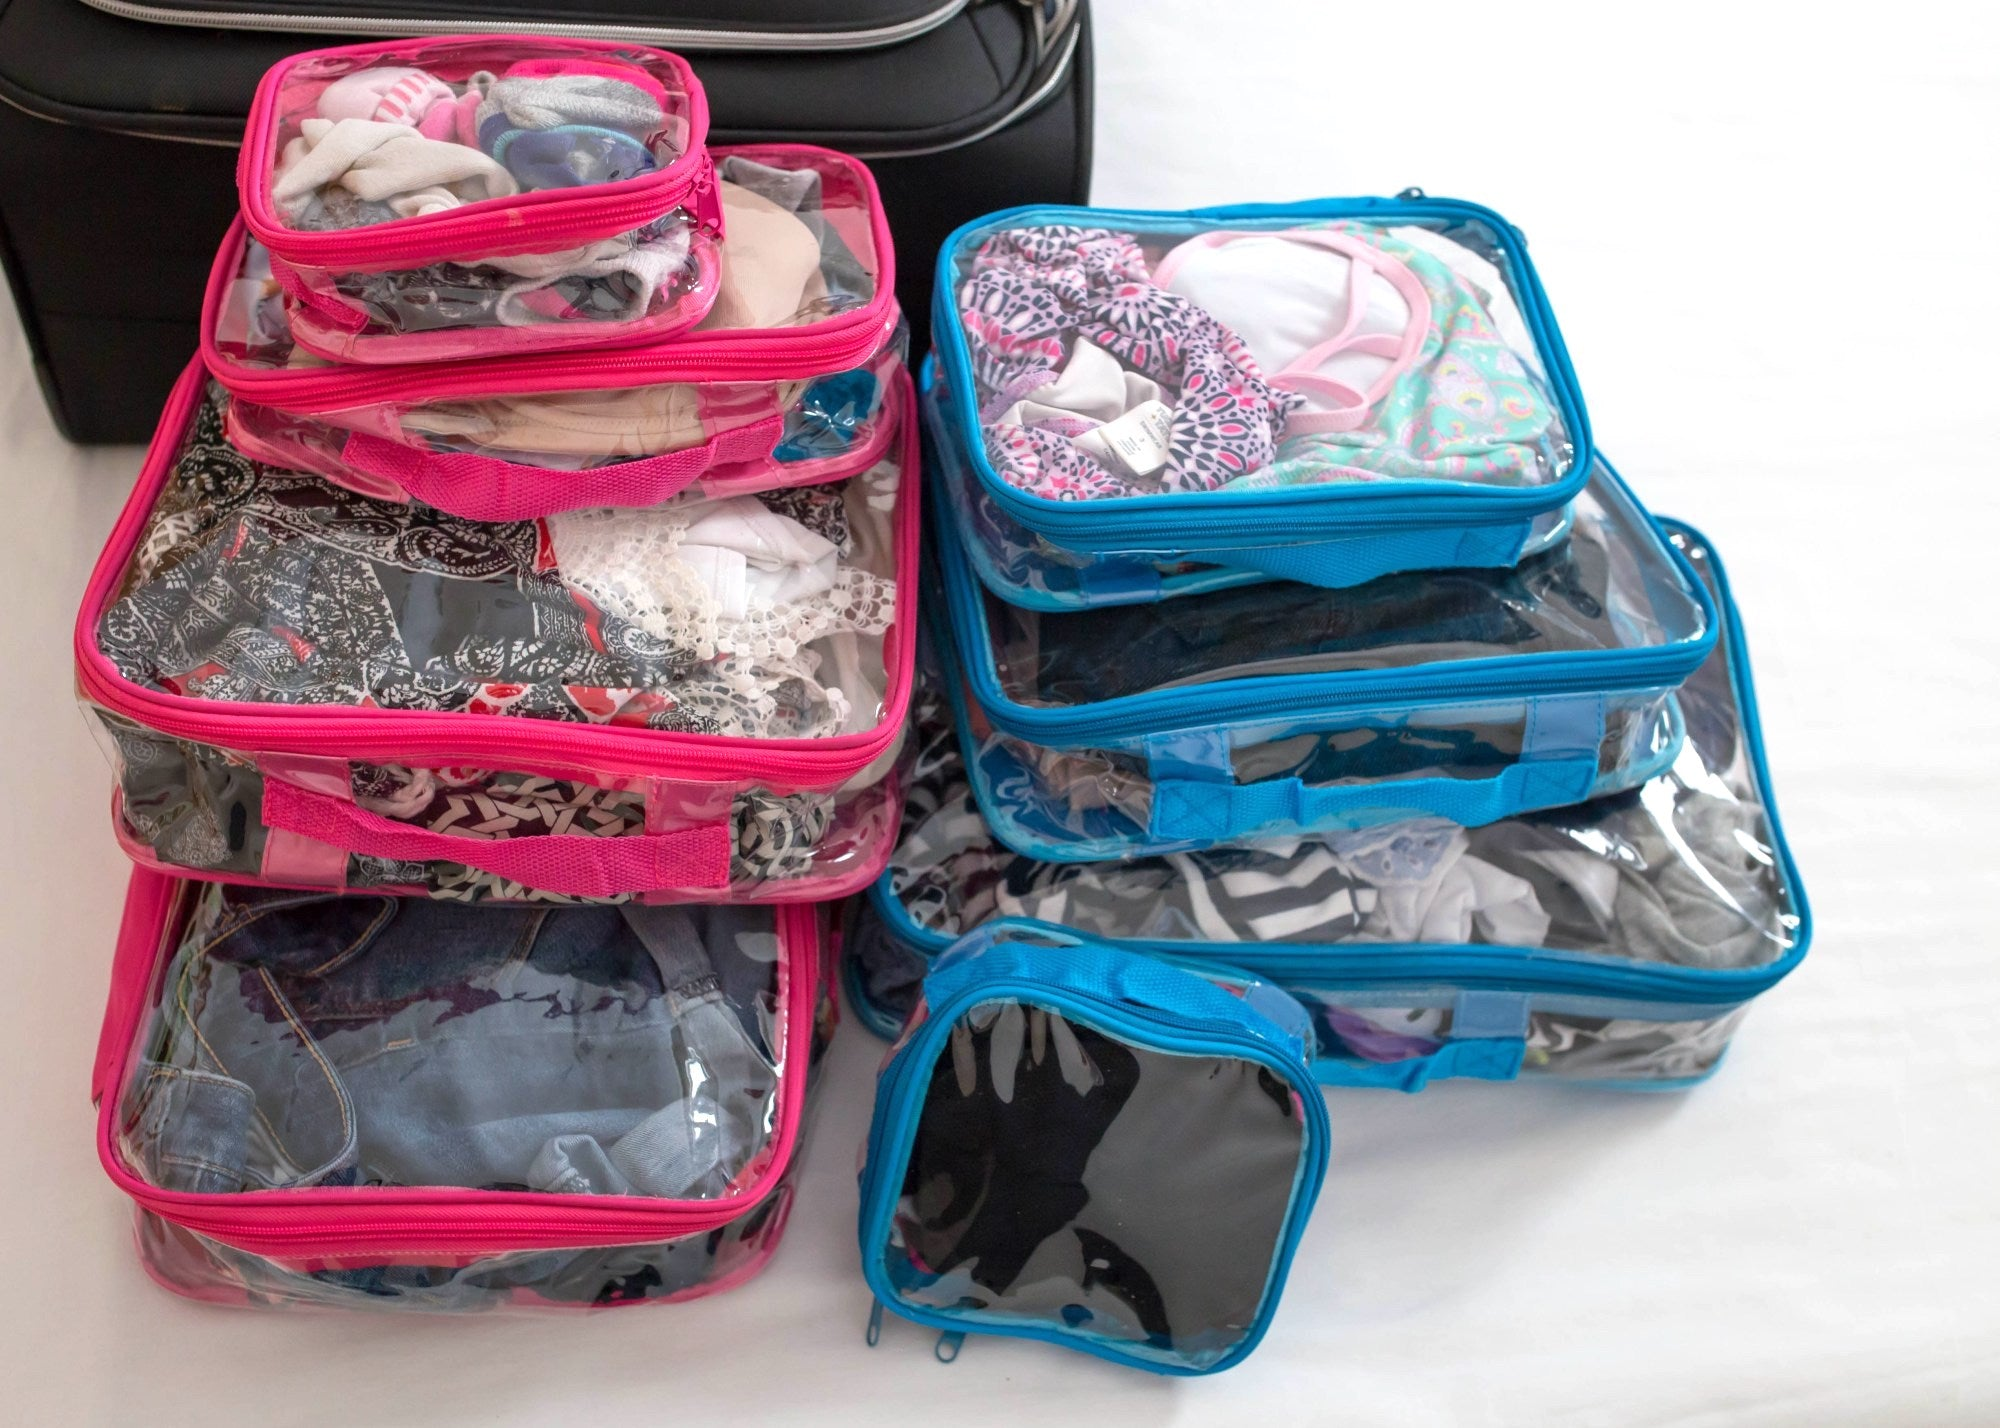 Pink and blue starter set packing cubes